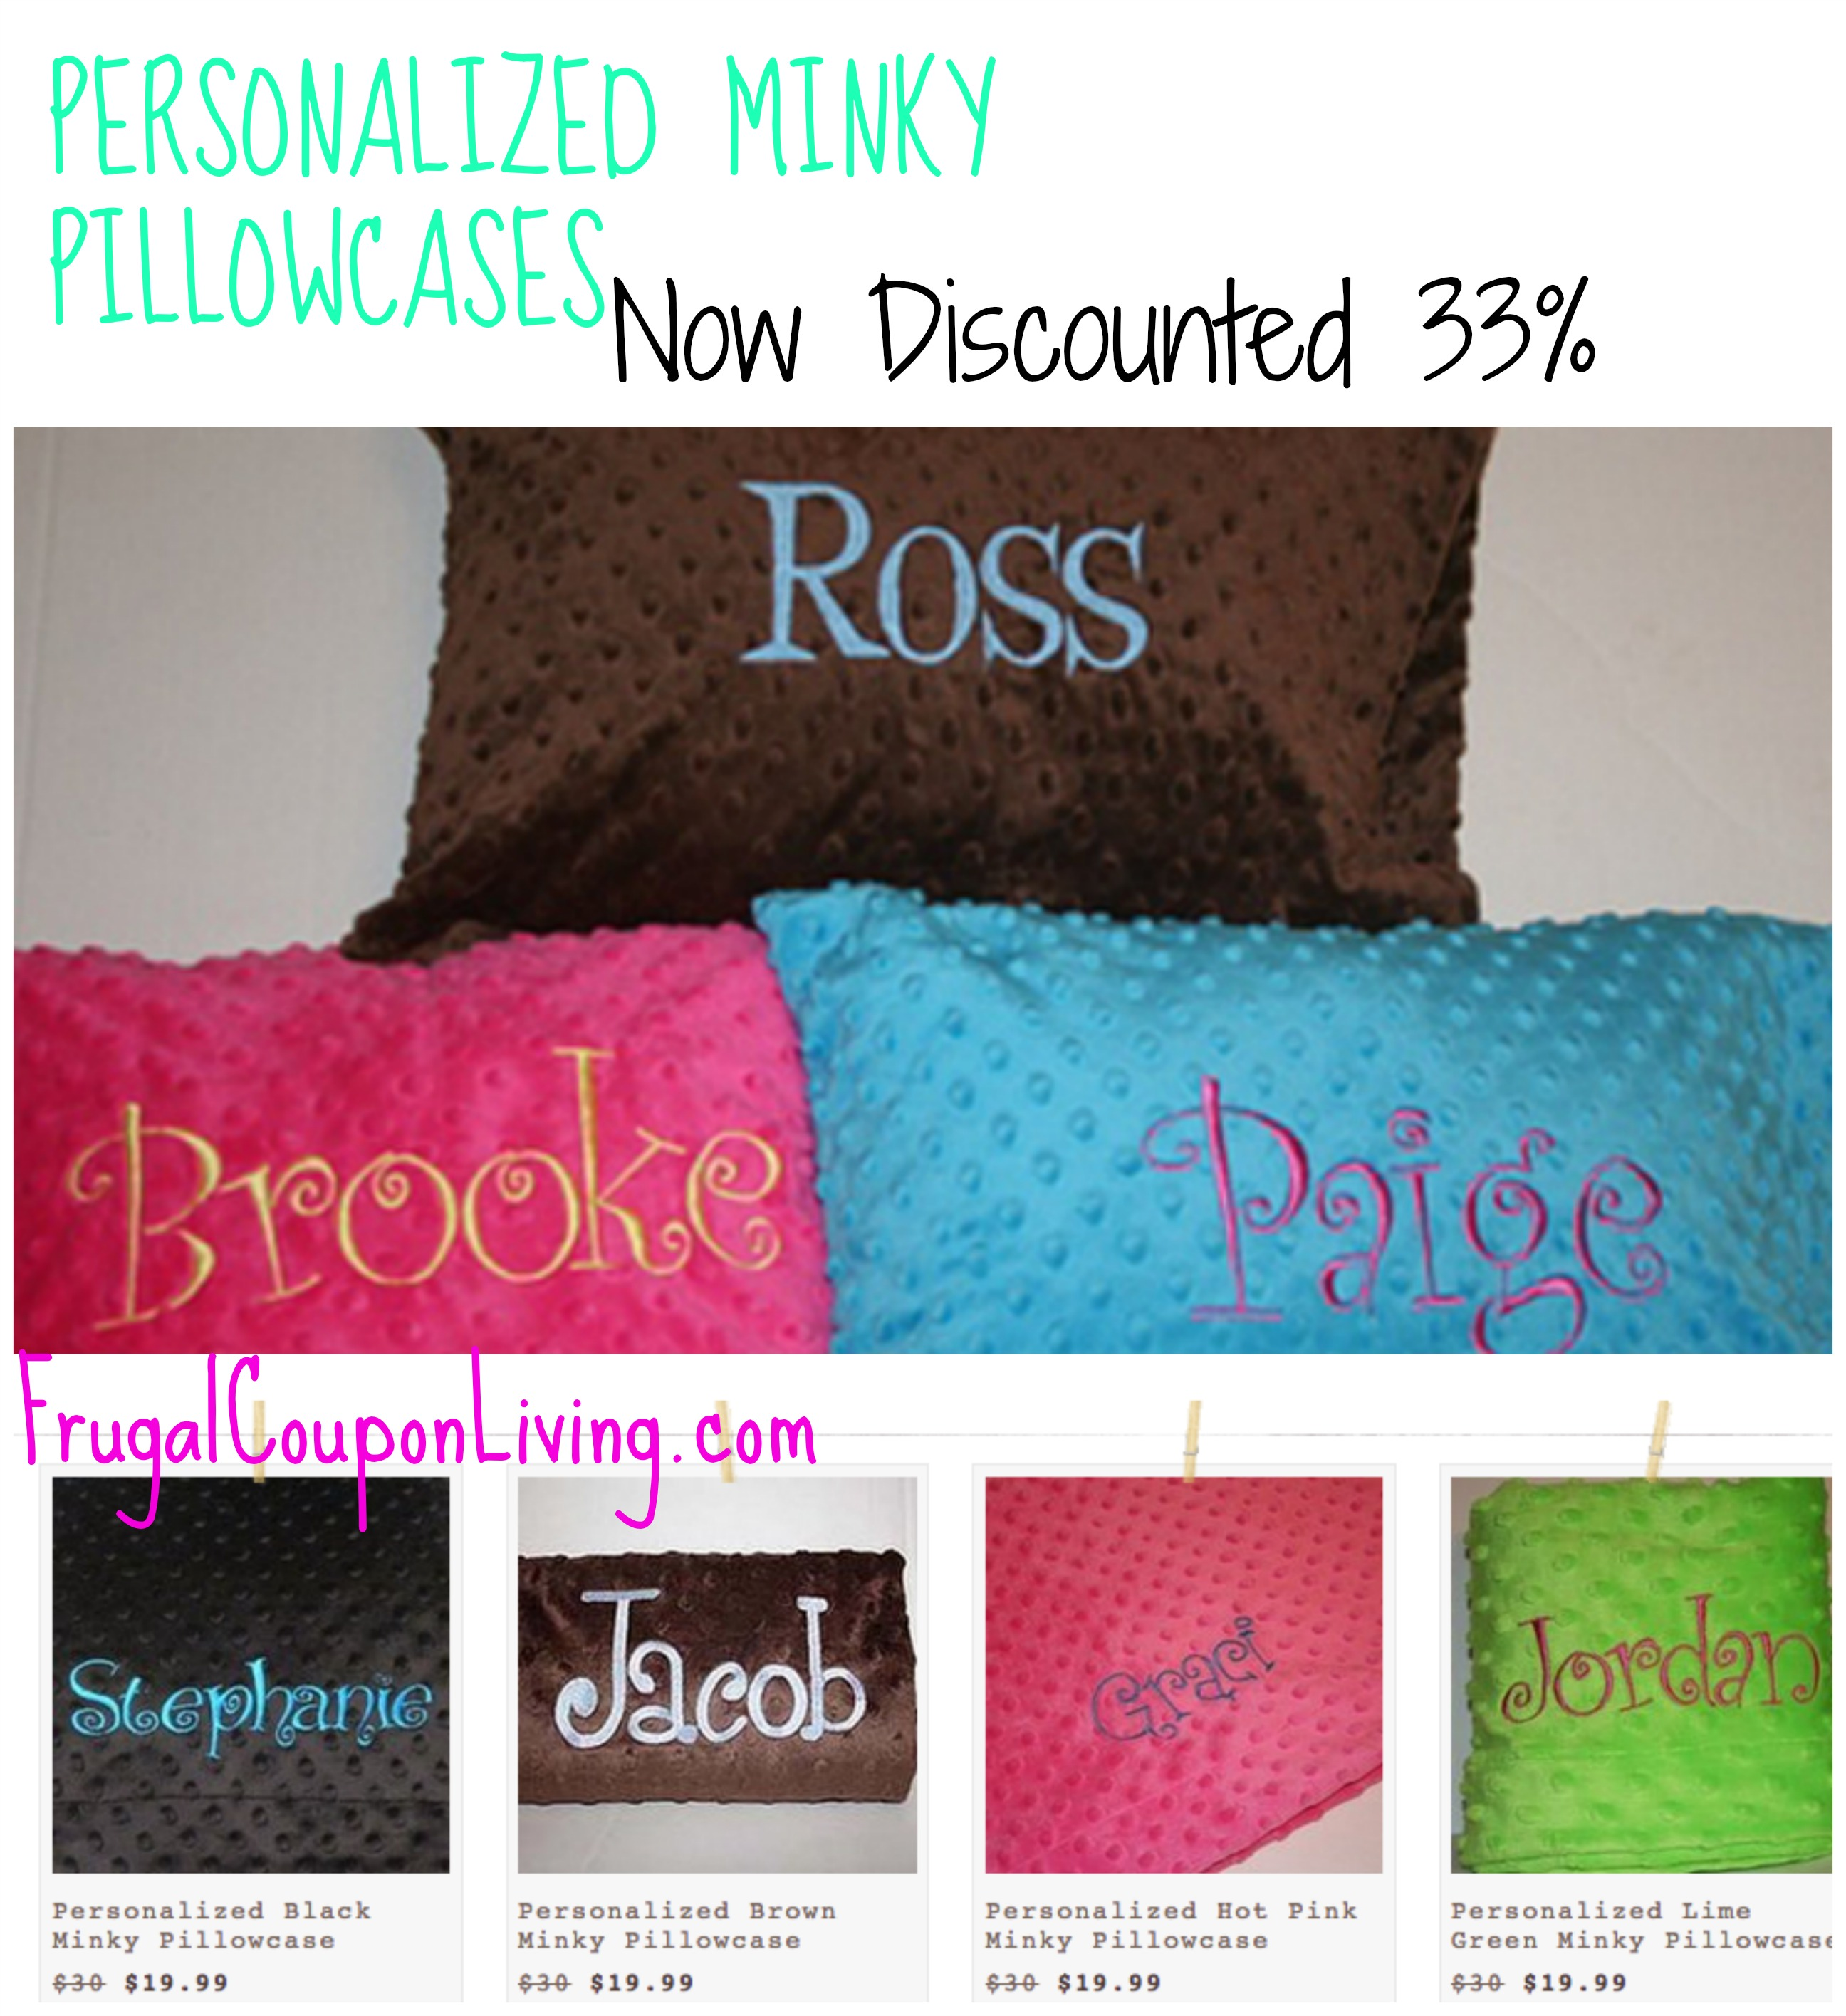 Tempting Personalized Minky Pillowcase Personalized Pillowcase Super Soft Minky Pillowcases Now Personalized Pillow Cases Etsy Personalized Pillow Cases Outdaughtered baby Personalized Pillow Cases